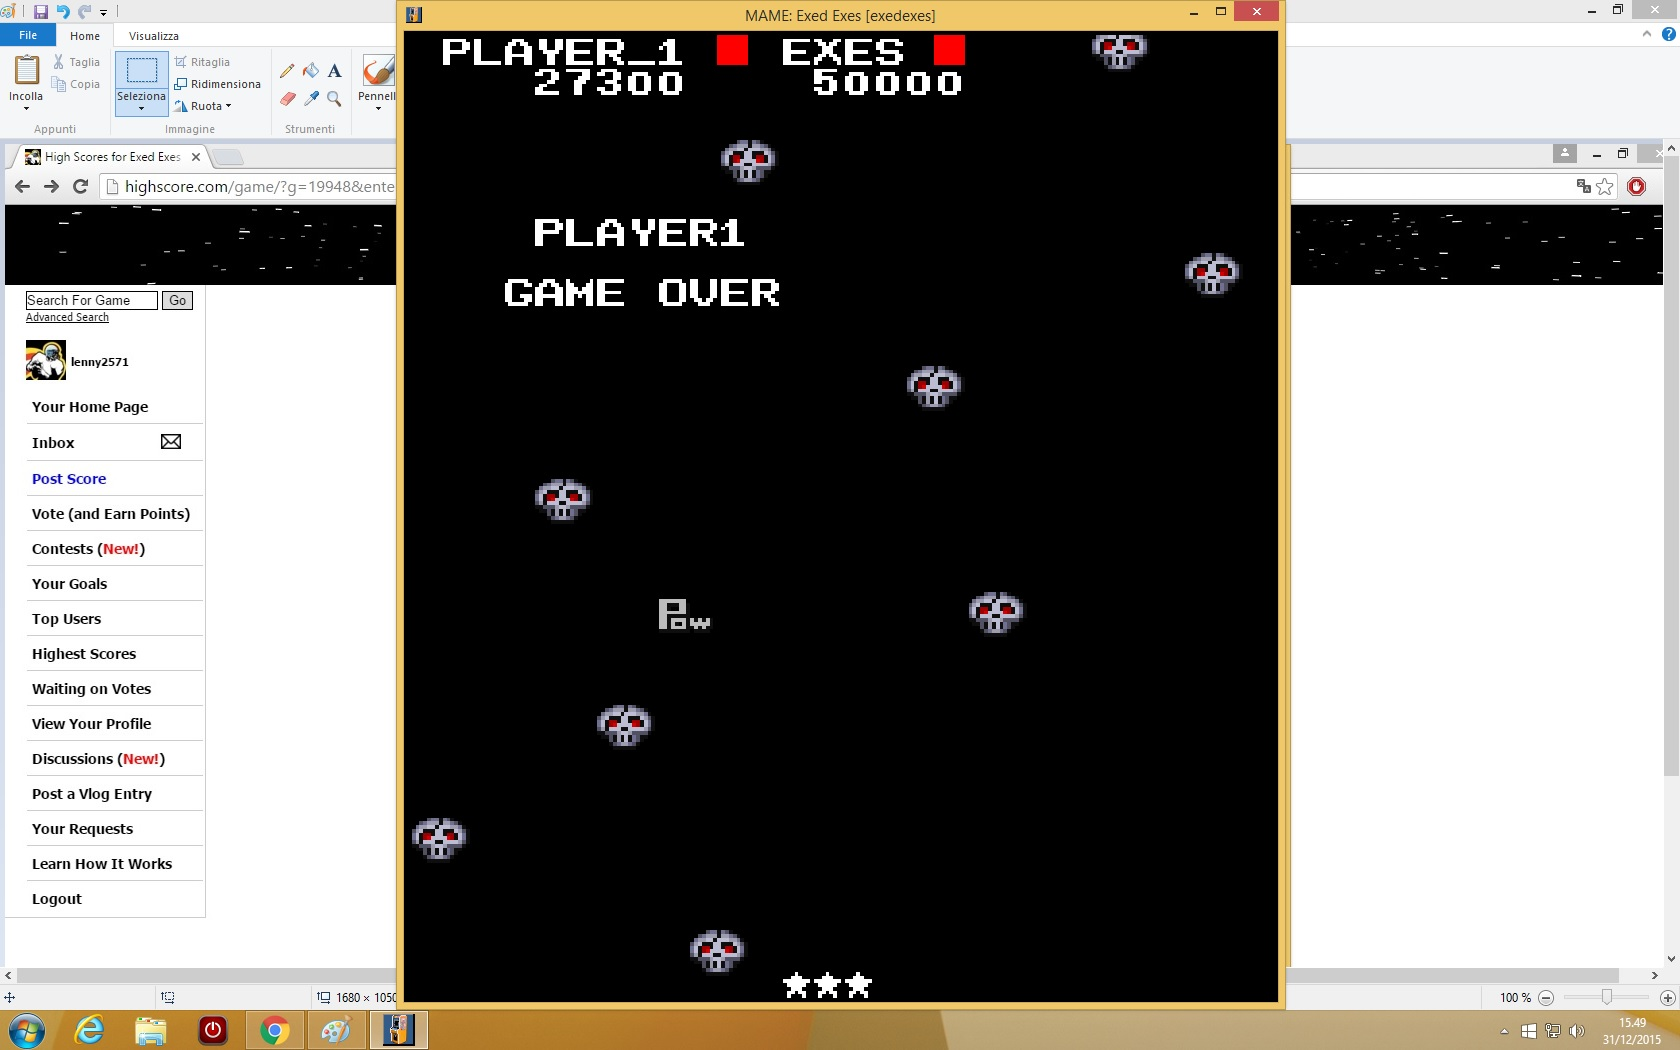 lenny2571: Exed Exes (Arcade Emulated / M.A.M.E.) 27,300 points on 2015-12-31 08:51:27